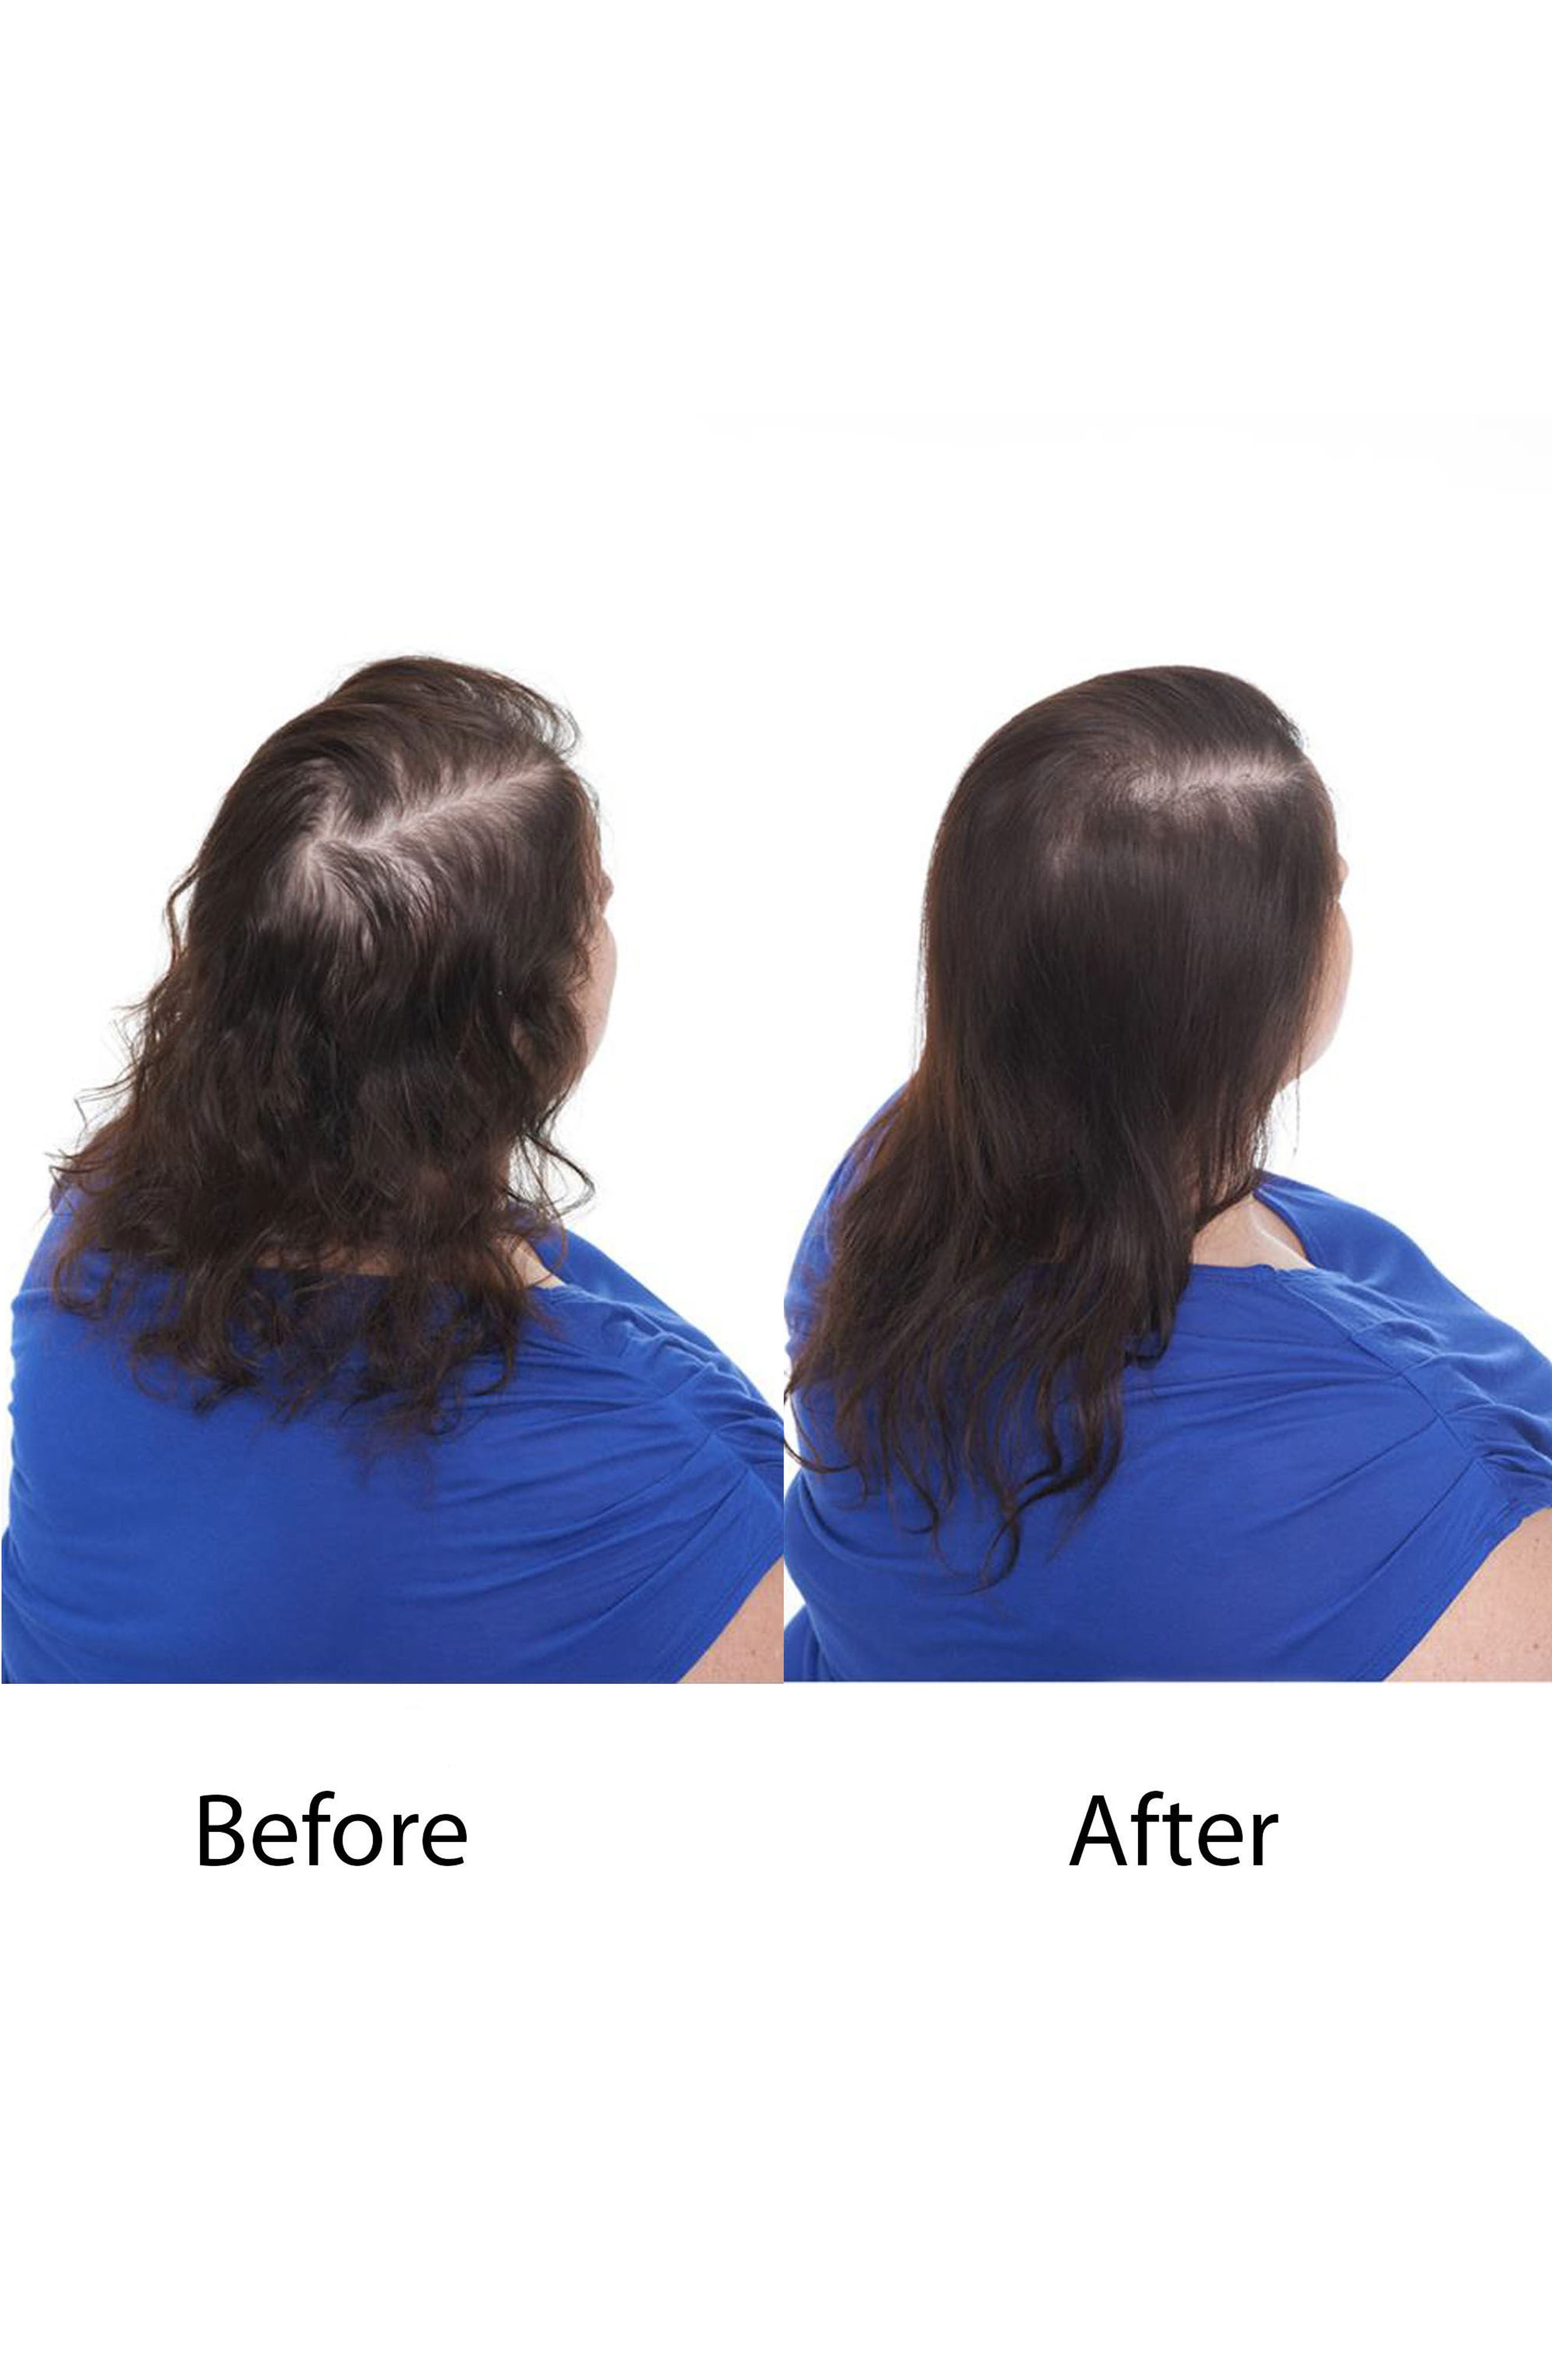 Hair Regrowth Treatment Spray for Women,                             Alternate thumbnail 4, color,                             No Color